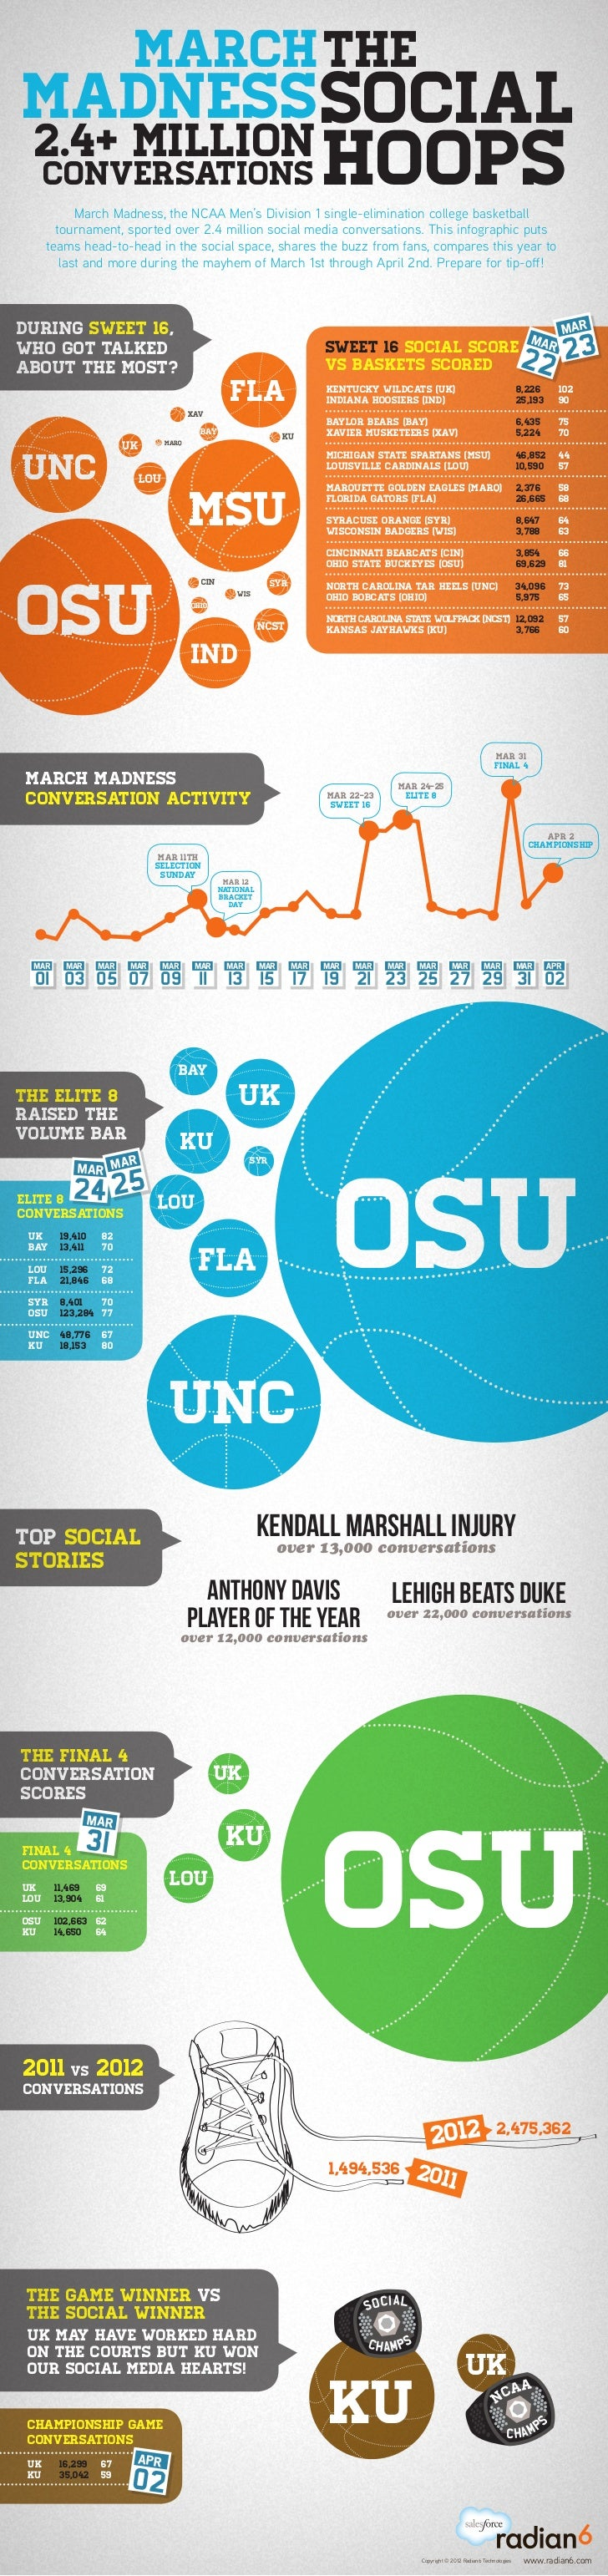 March Madness: The Social Hoops Infographic